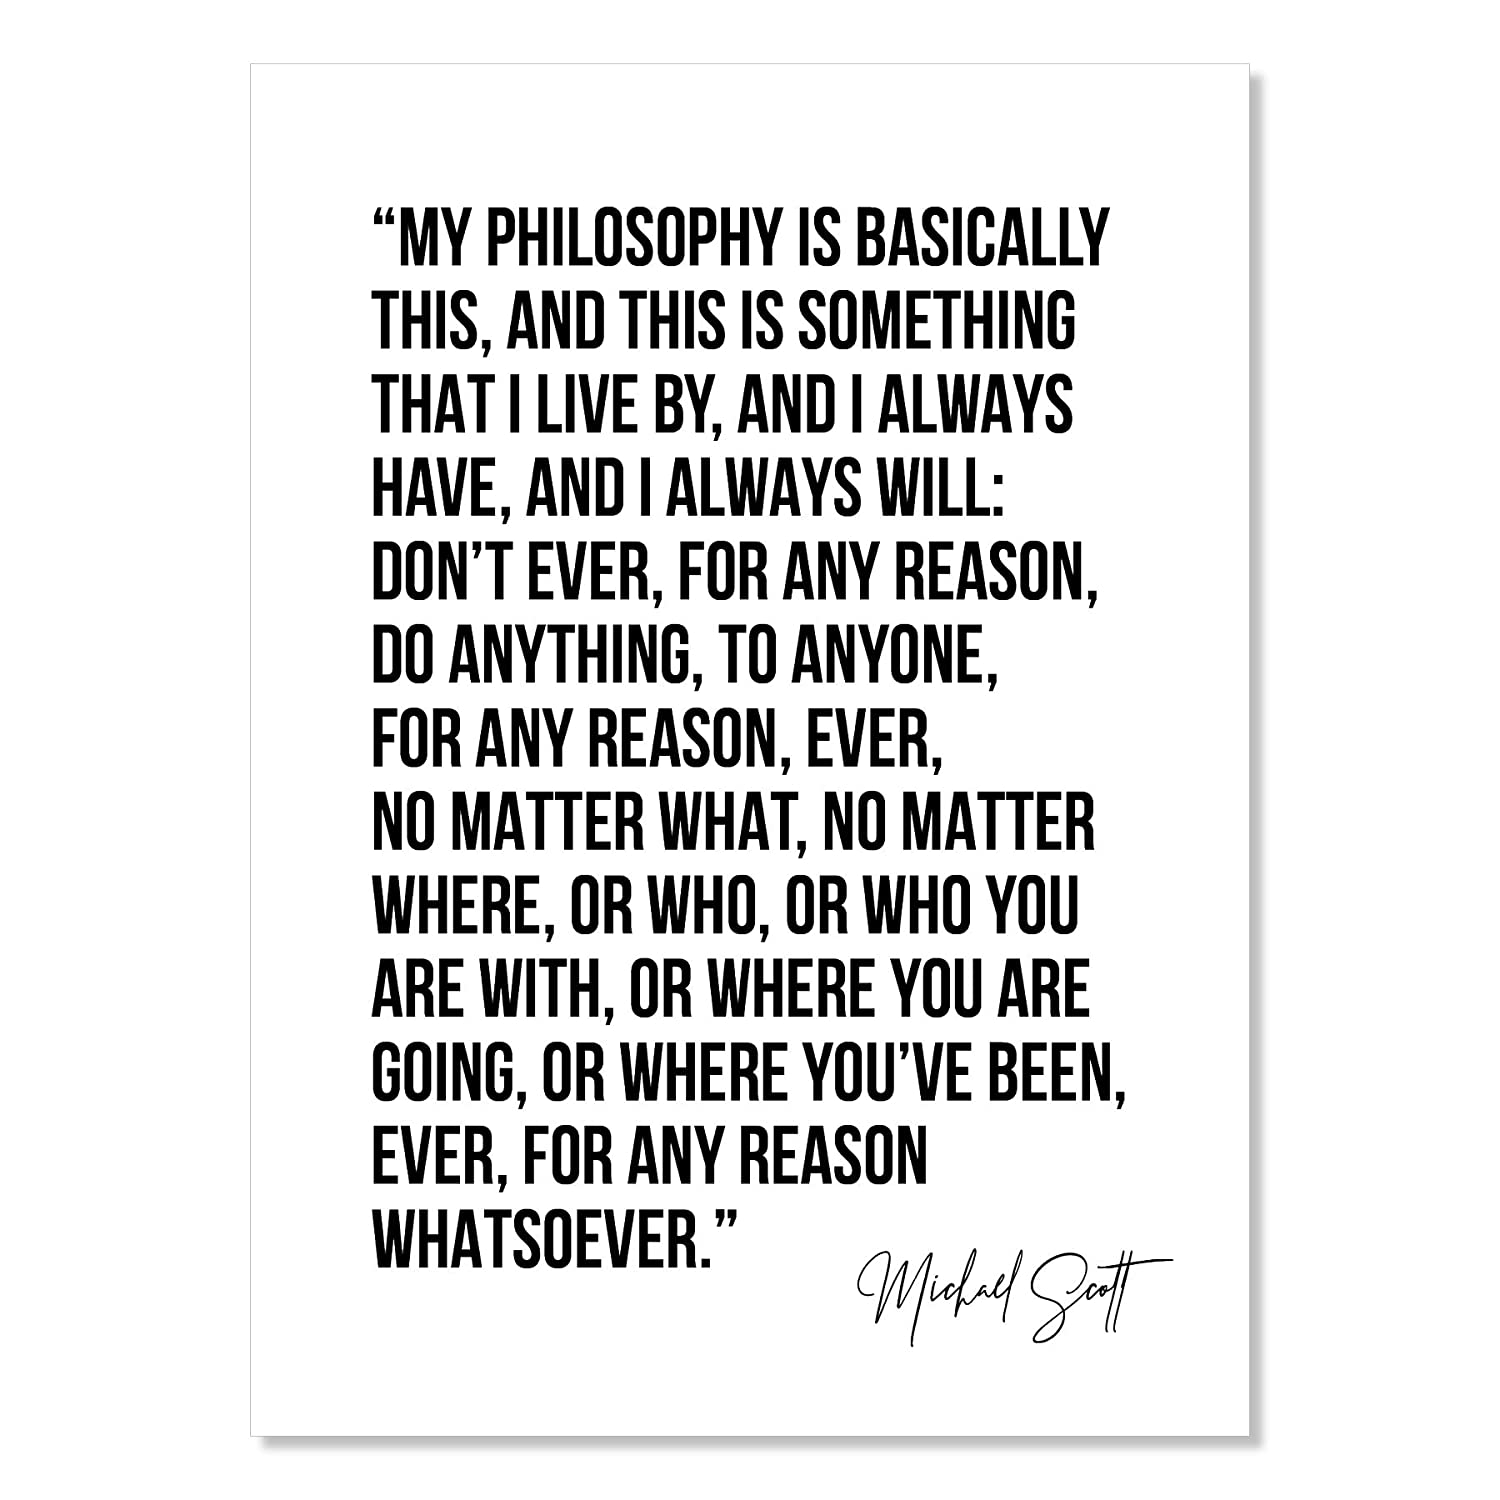 free shipping My Philosophy Is Basically This. -Michael Max 73% OFF Bold S Scott and Quote